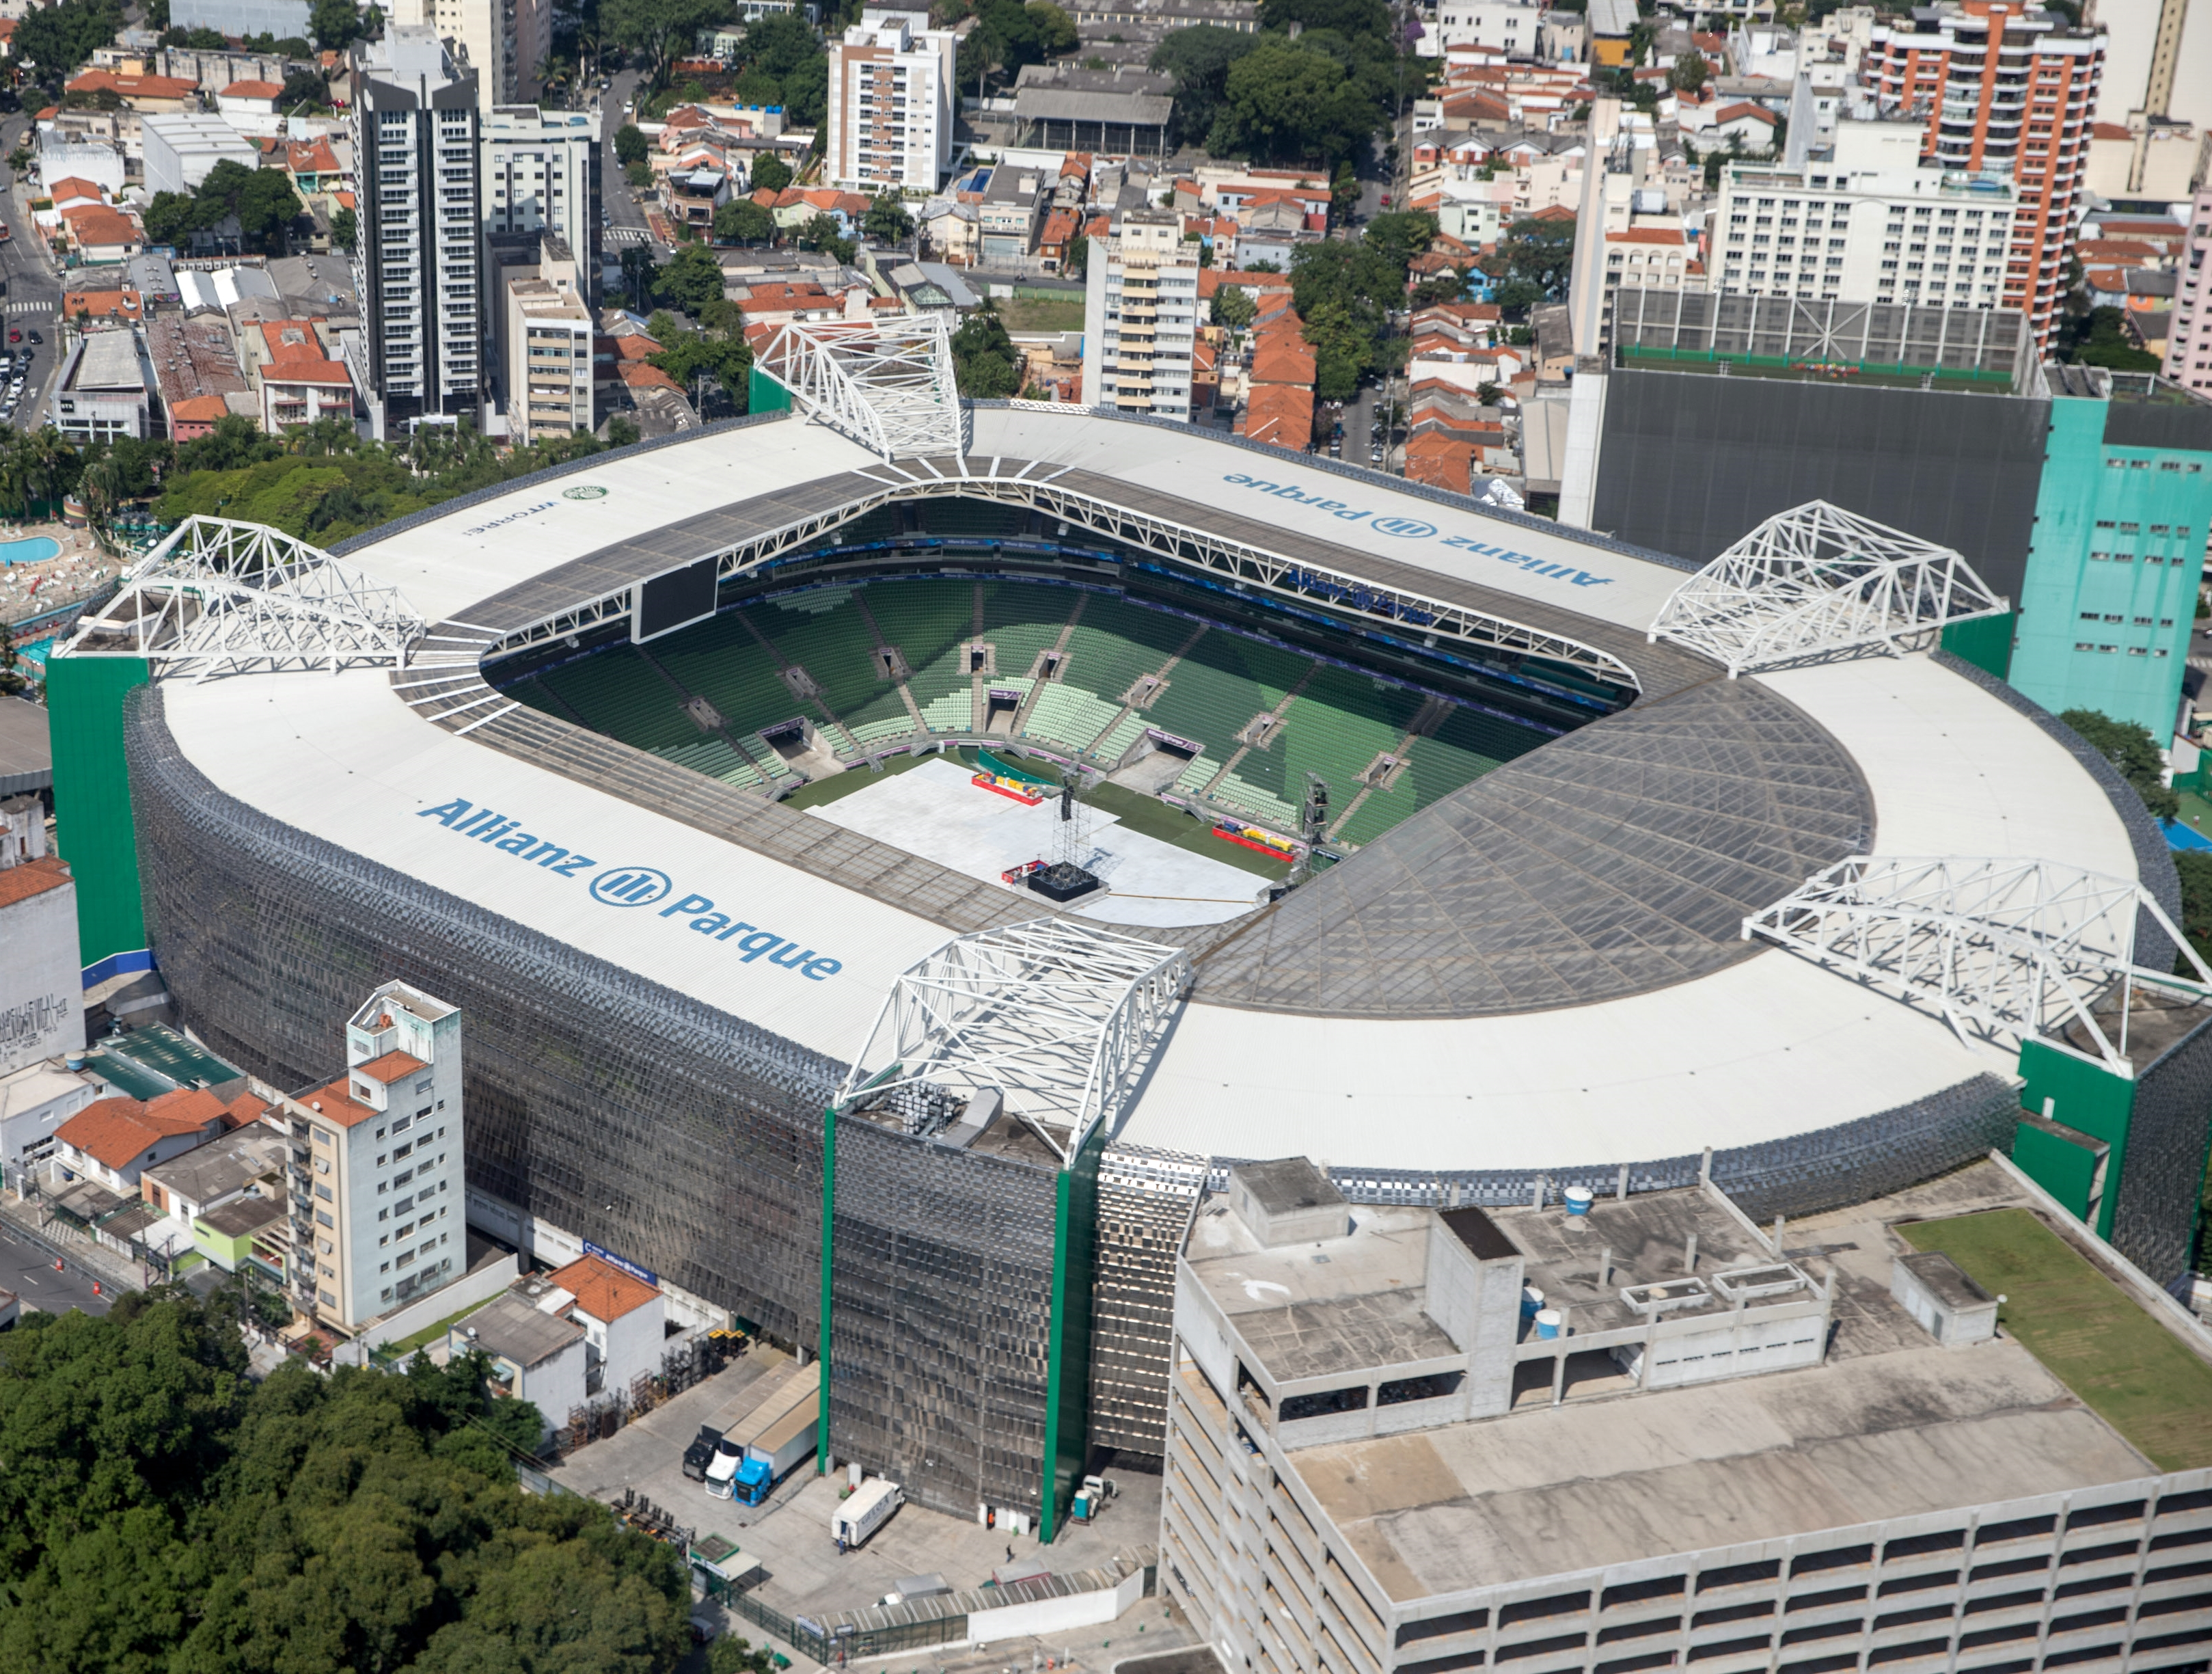 Allianz Parque - Wikipedia